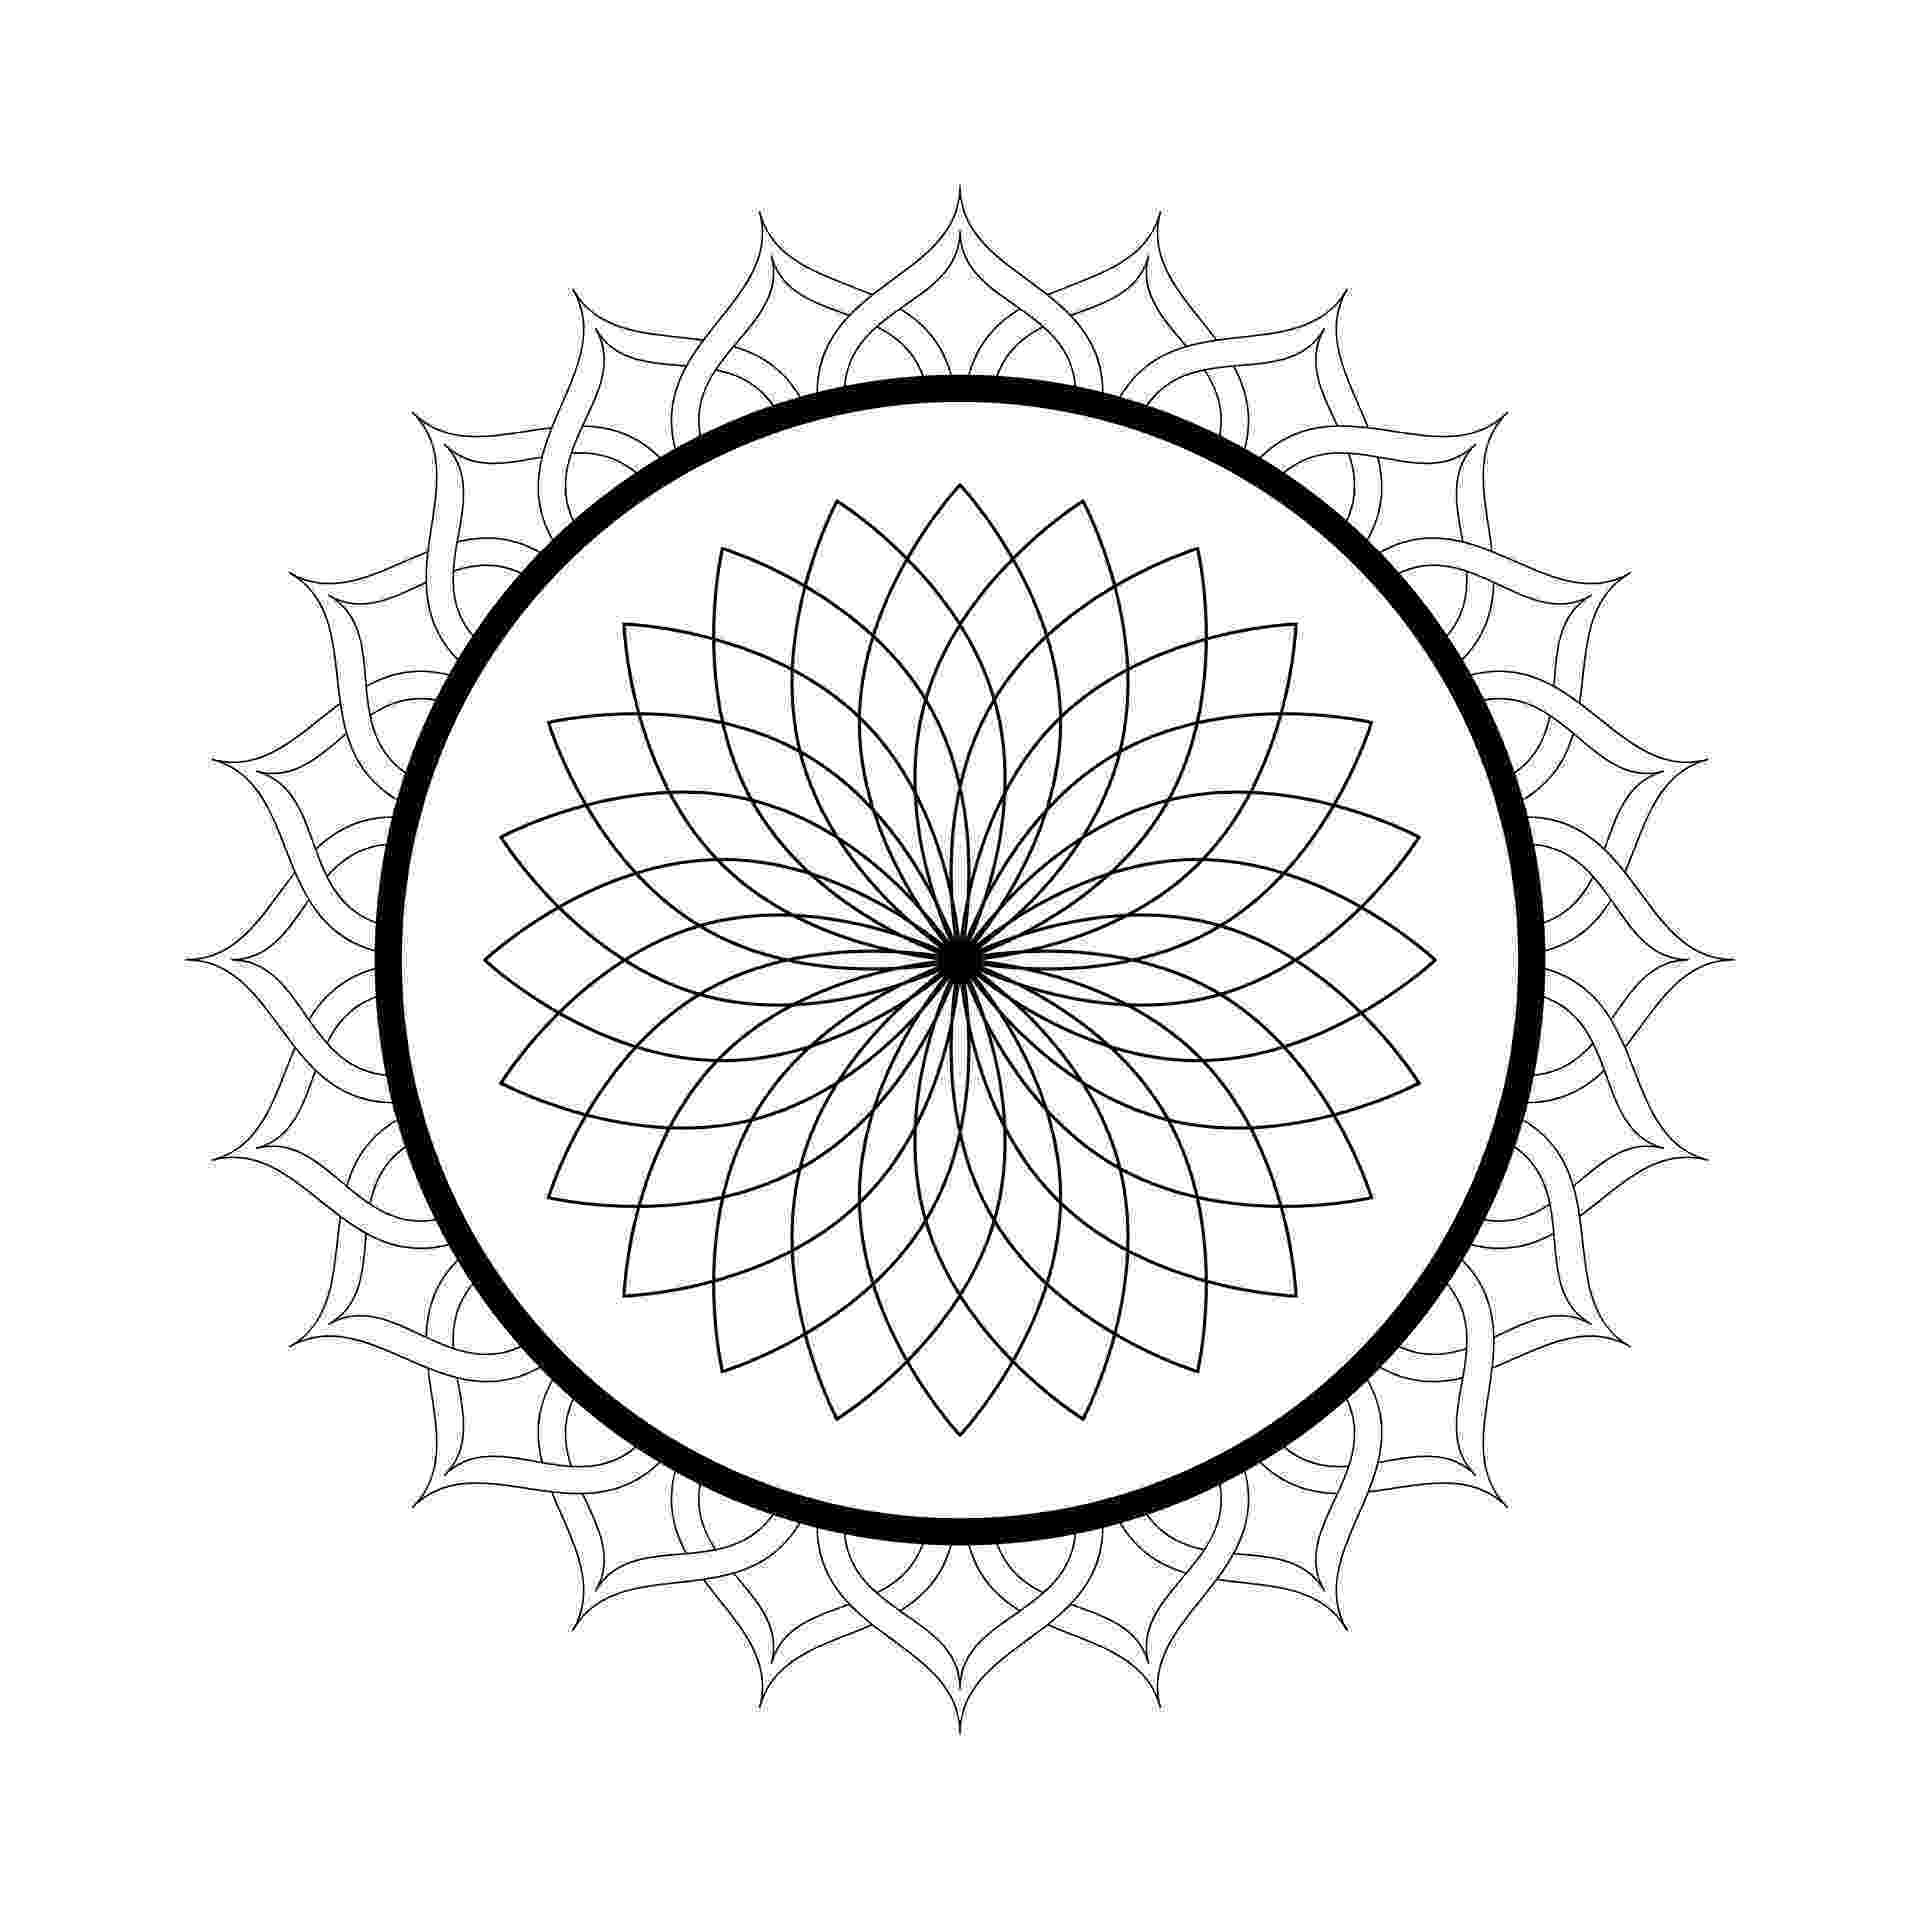 mandala coloring pages for adults free here are difficult mandalas coloring pages for adults to pages mandala coloring free for adults